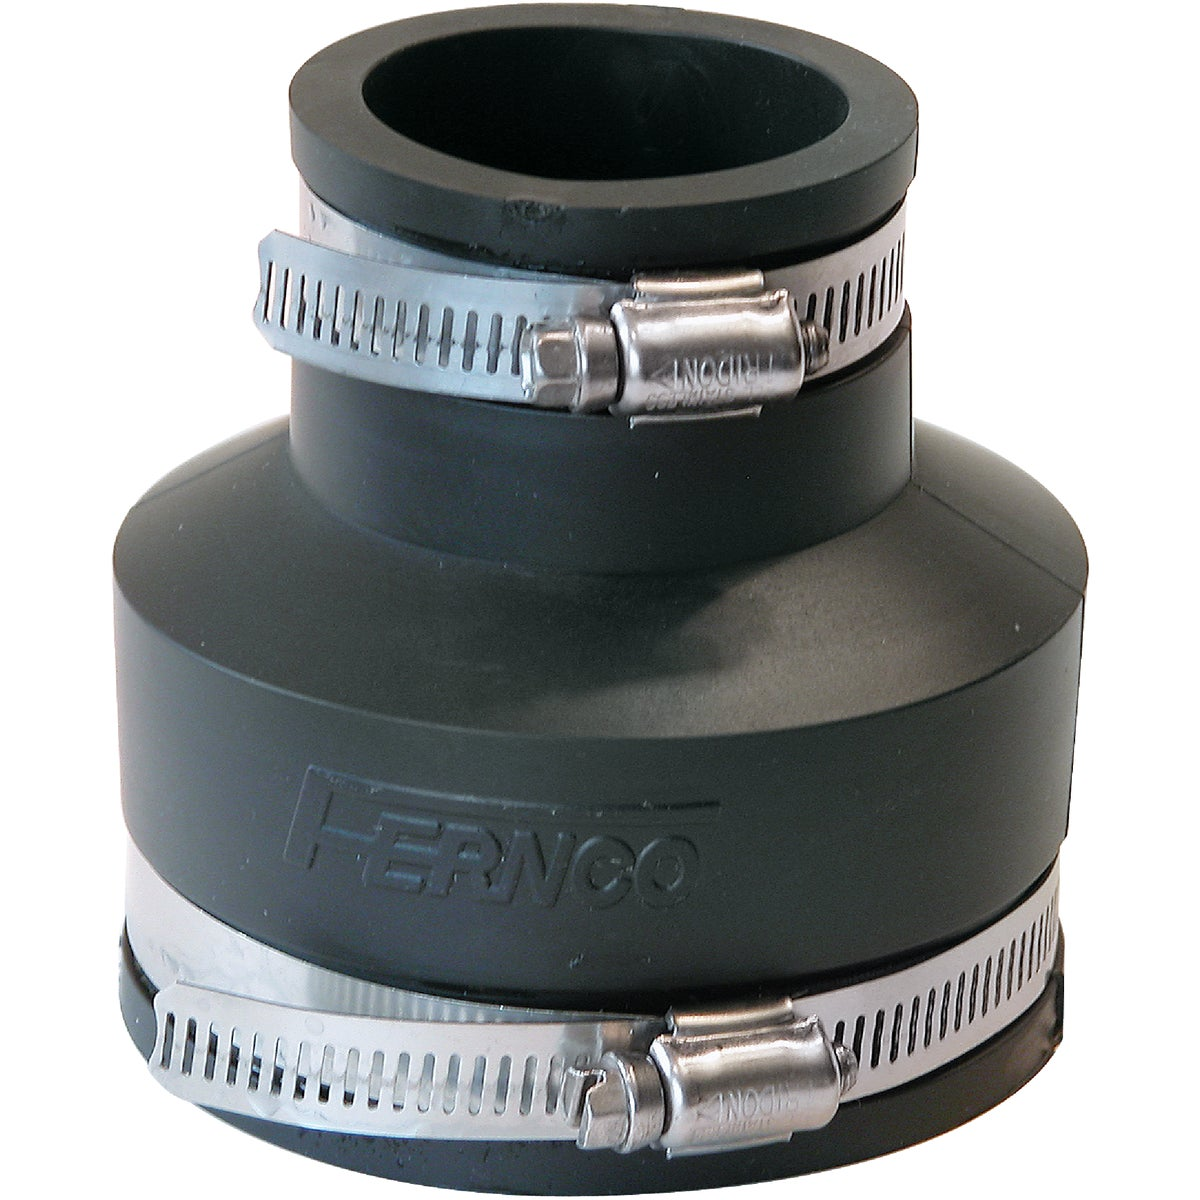 3X1-1/2 FLEX COUPLING - P1056-315 by Fernco Inc